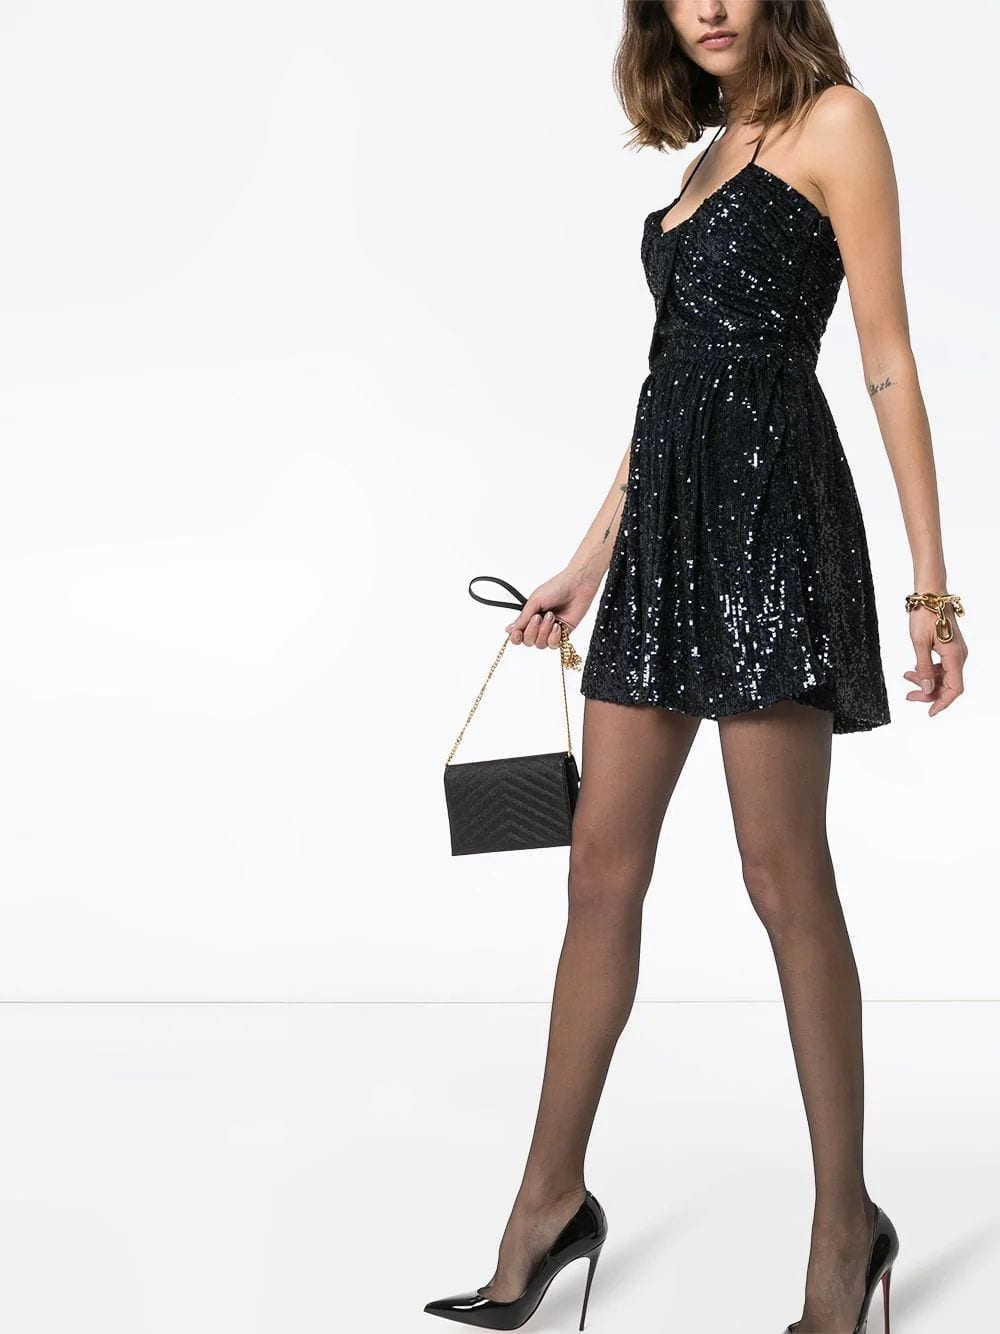 SAINT LAURENT Navy Sequined Halter Mini Dress